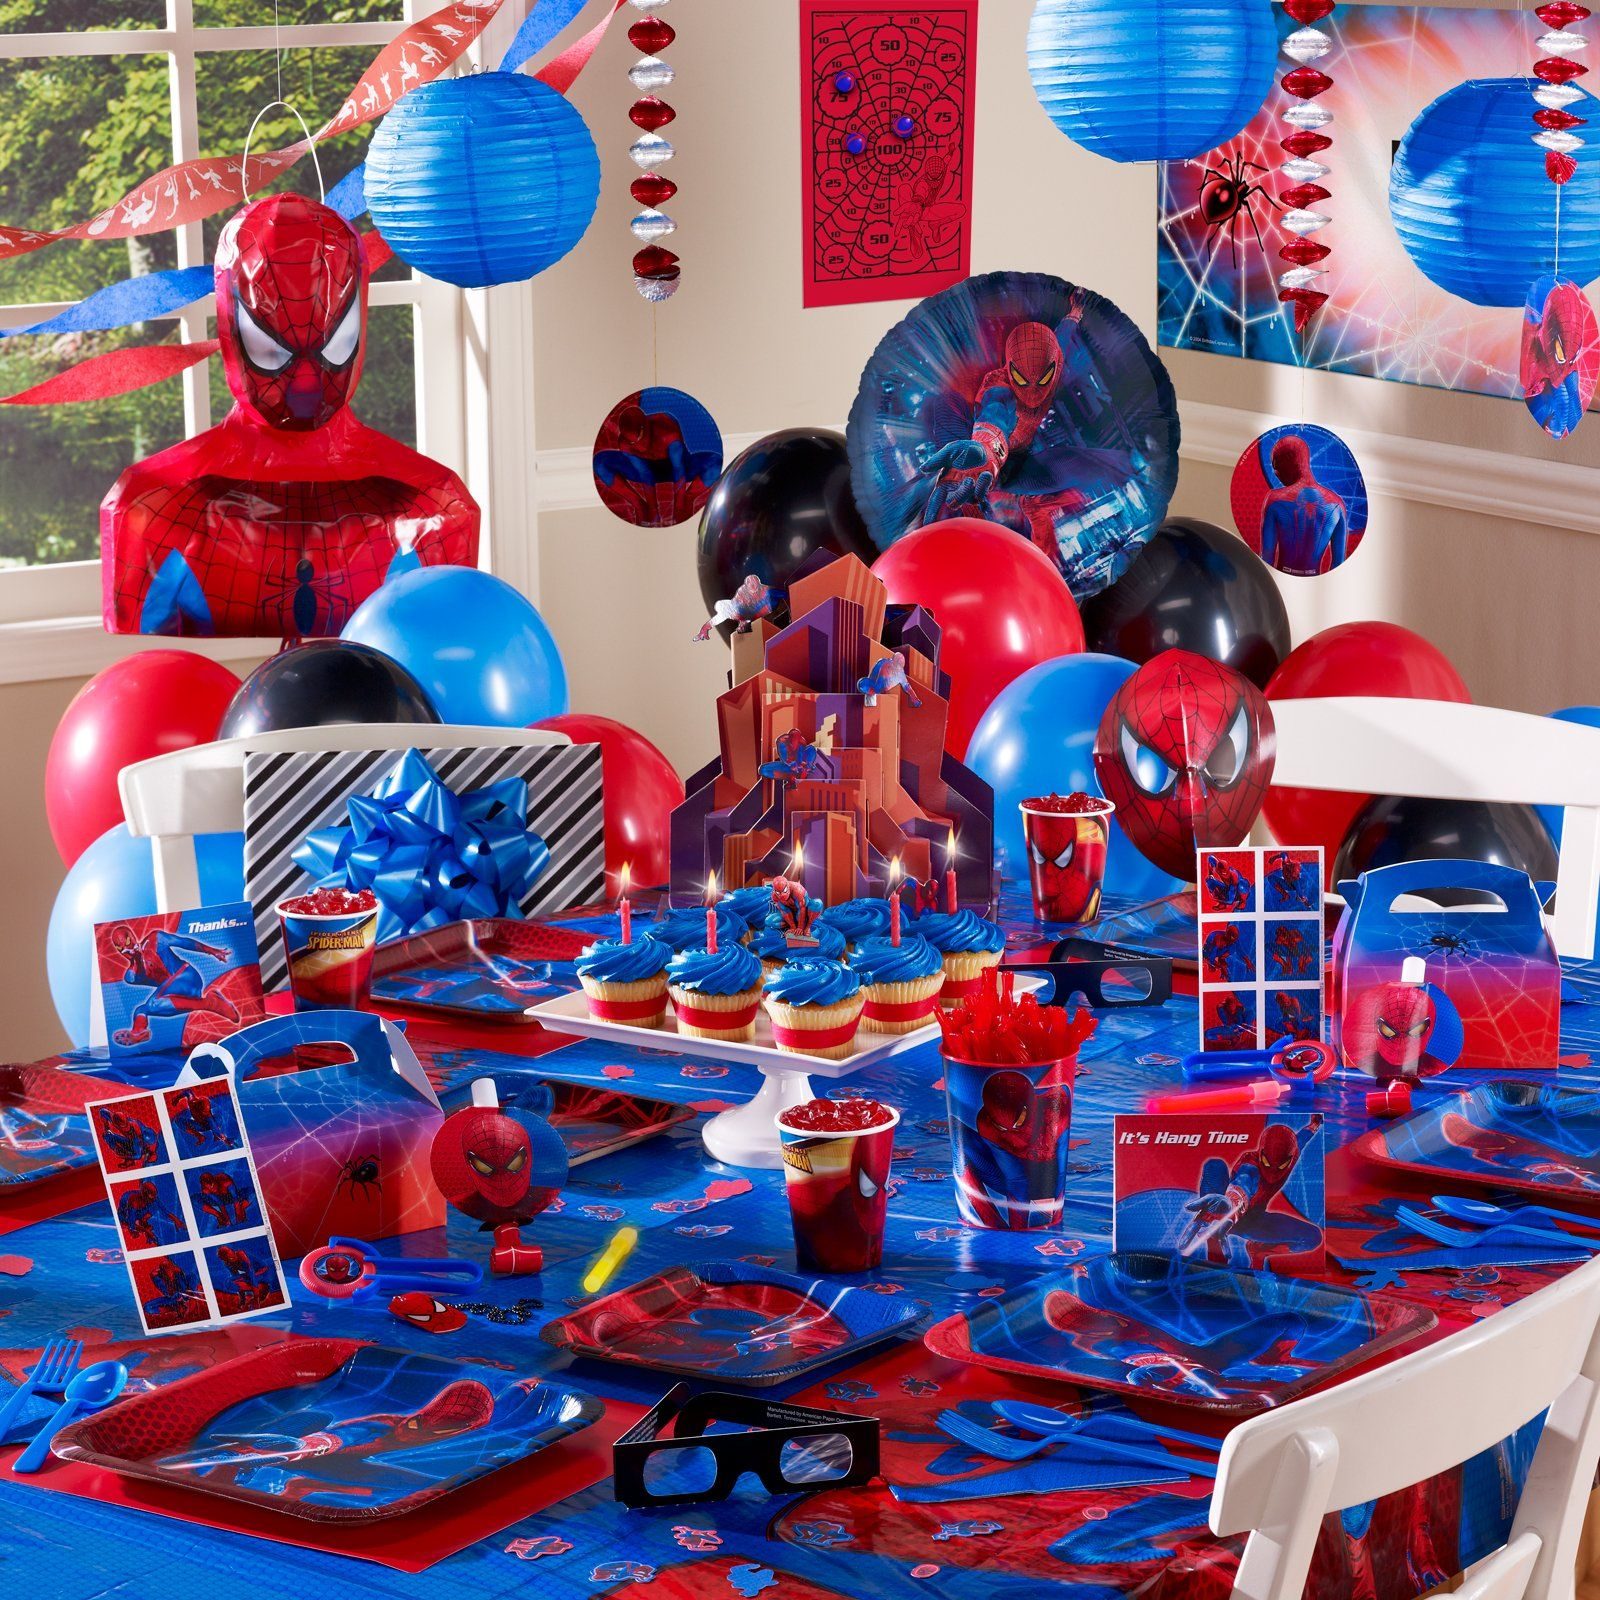 Spiderman theme party ideas pinterest cols et anniversaires - Deco anniversaire spiderman ...